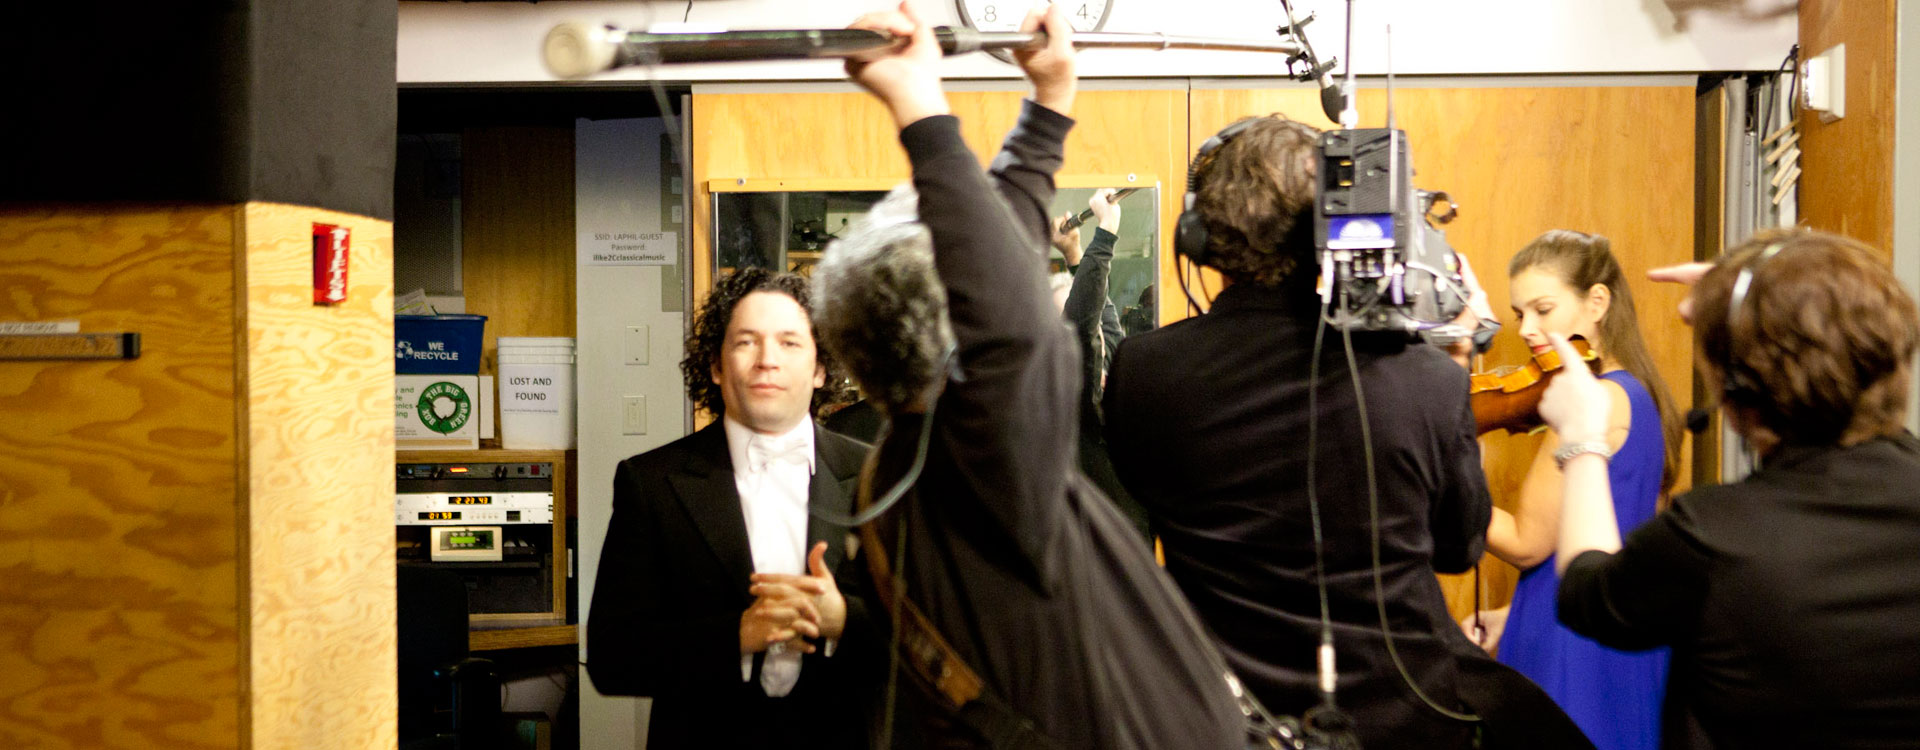 LA Phil Live: Dudamel conducts Mendelsohn